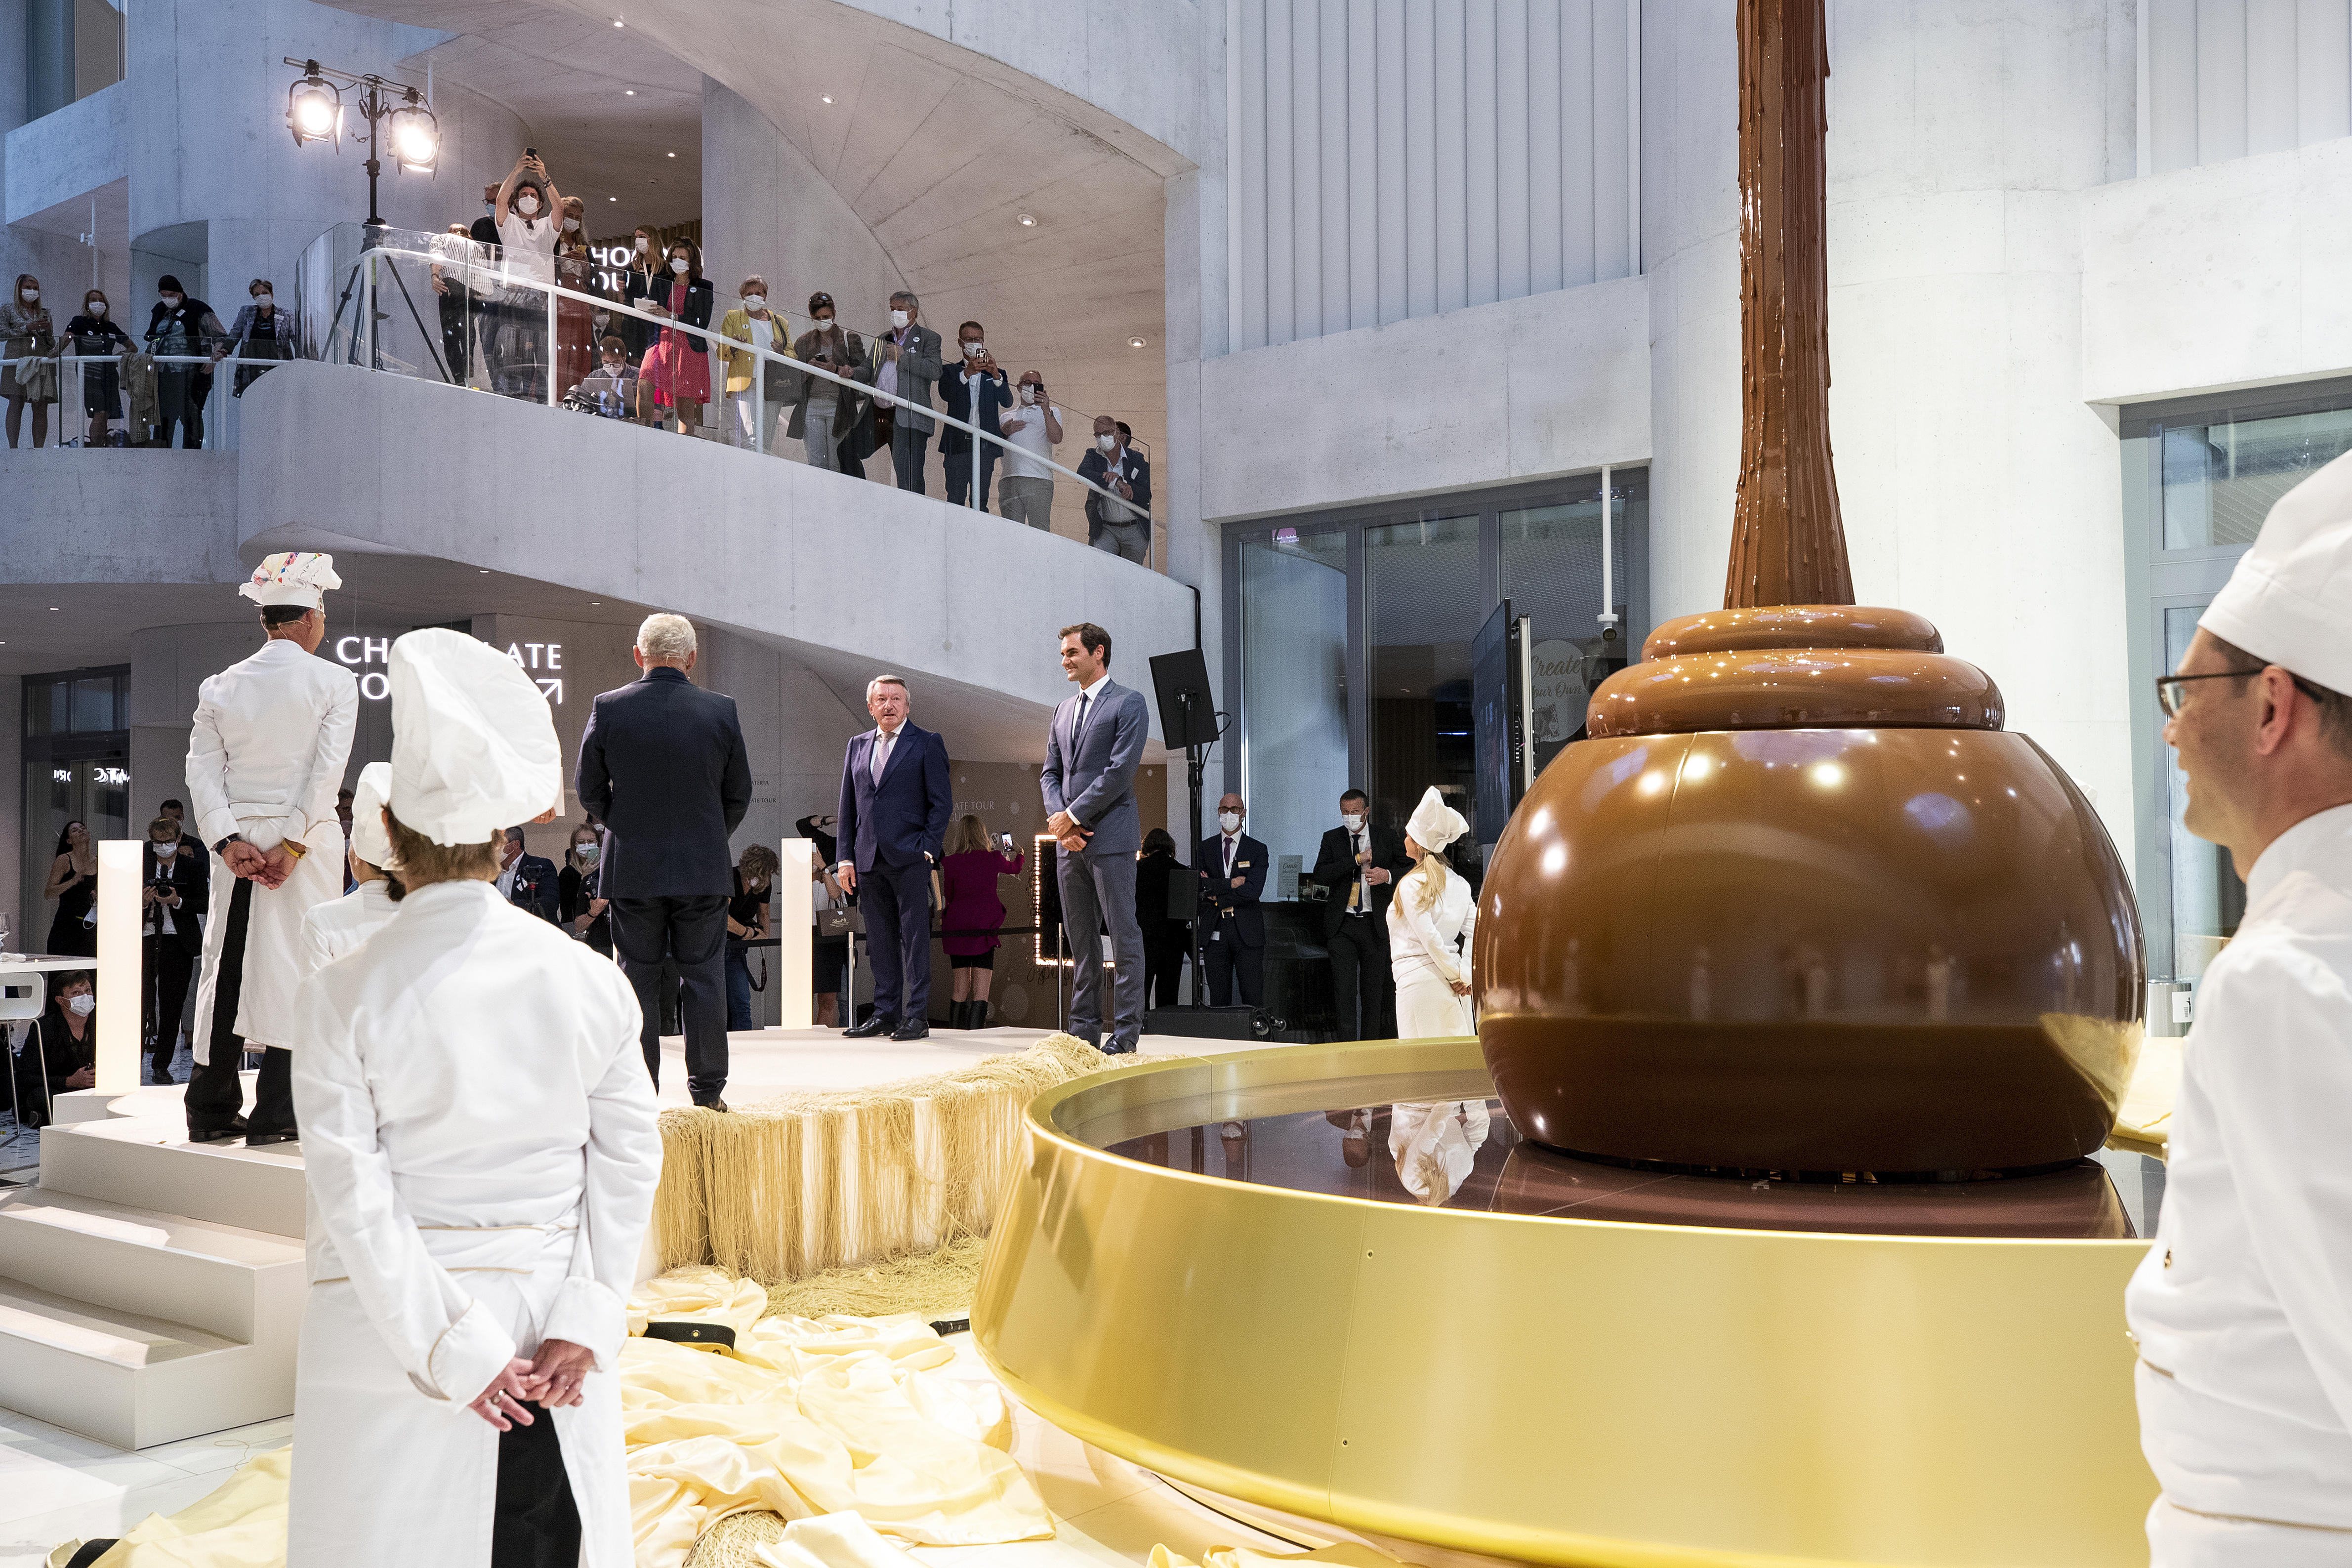 Lindt Home of Chocolate grand opening: Spectacular unveiling of the chocolate fountain with Roger Federer and Swiss Federal Council Ueli Maurer